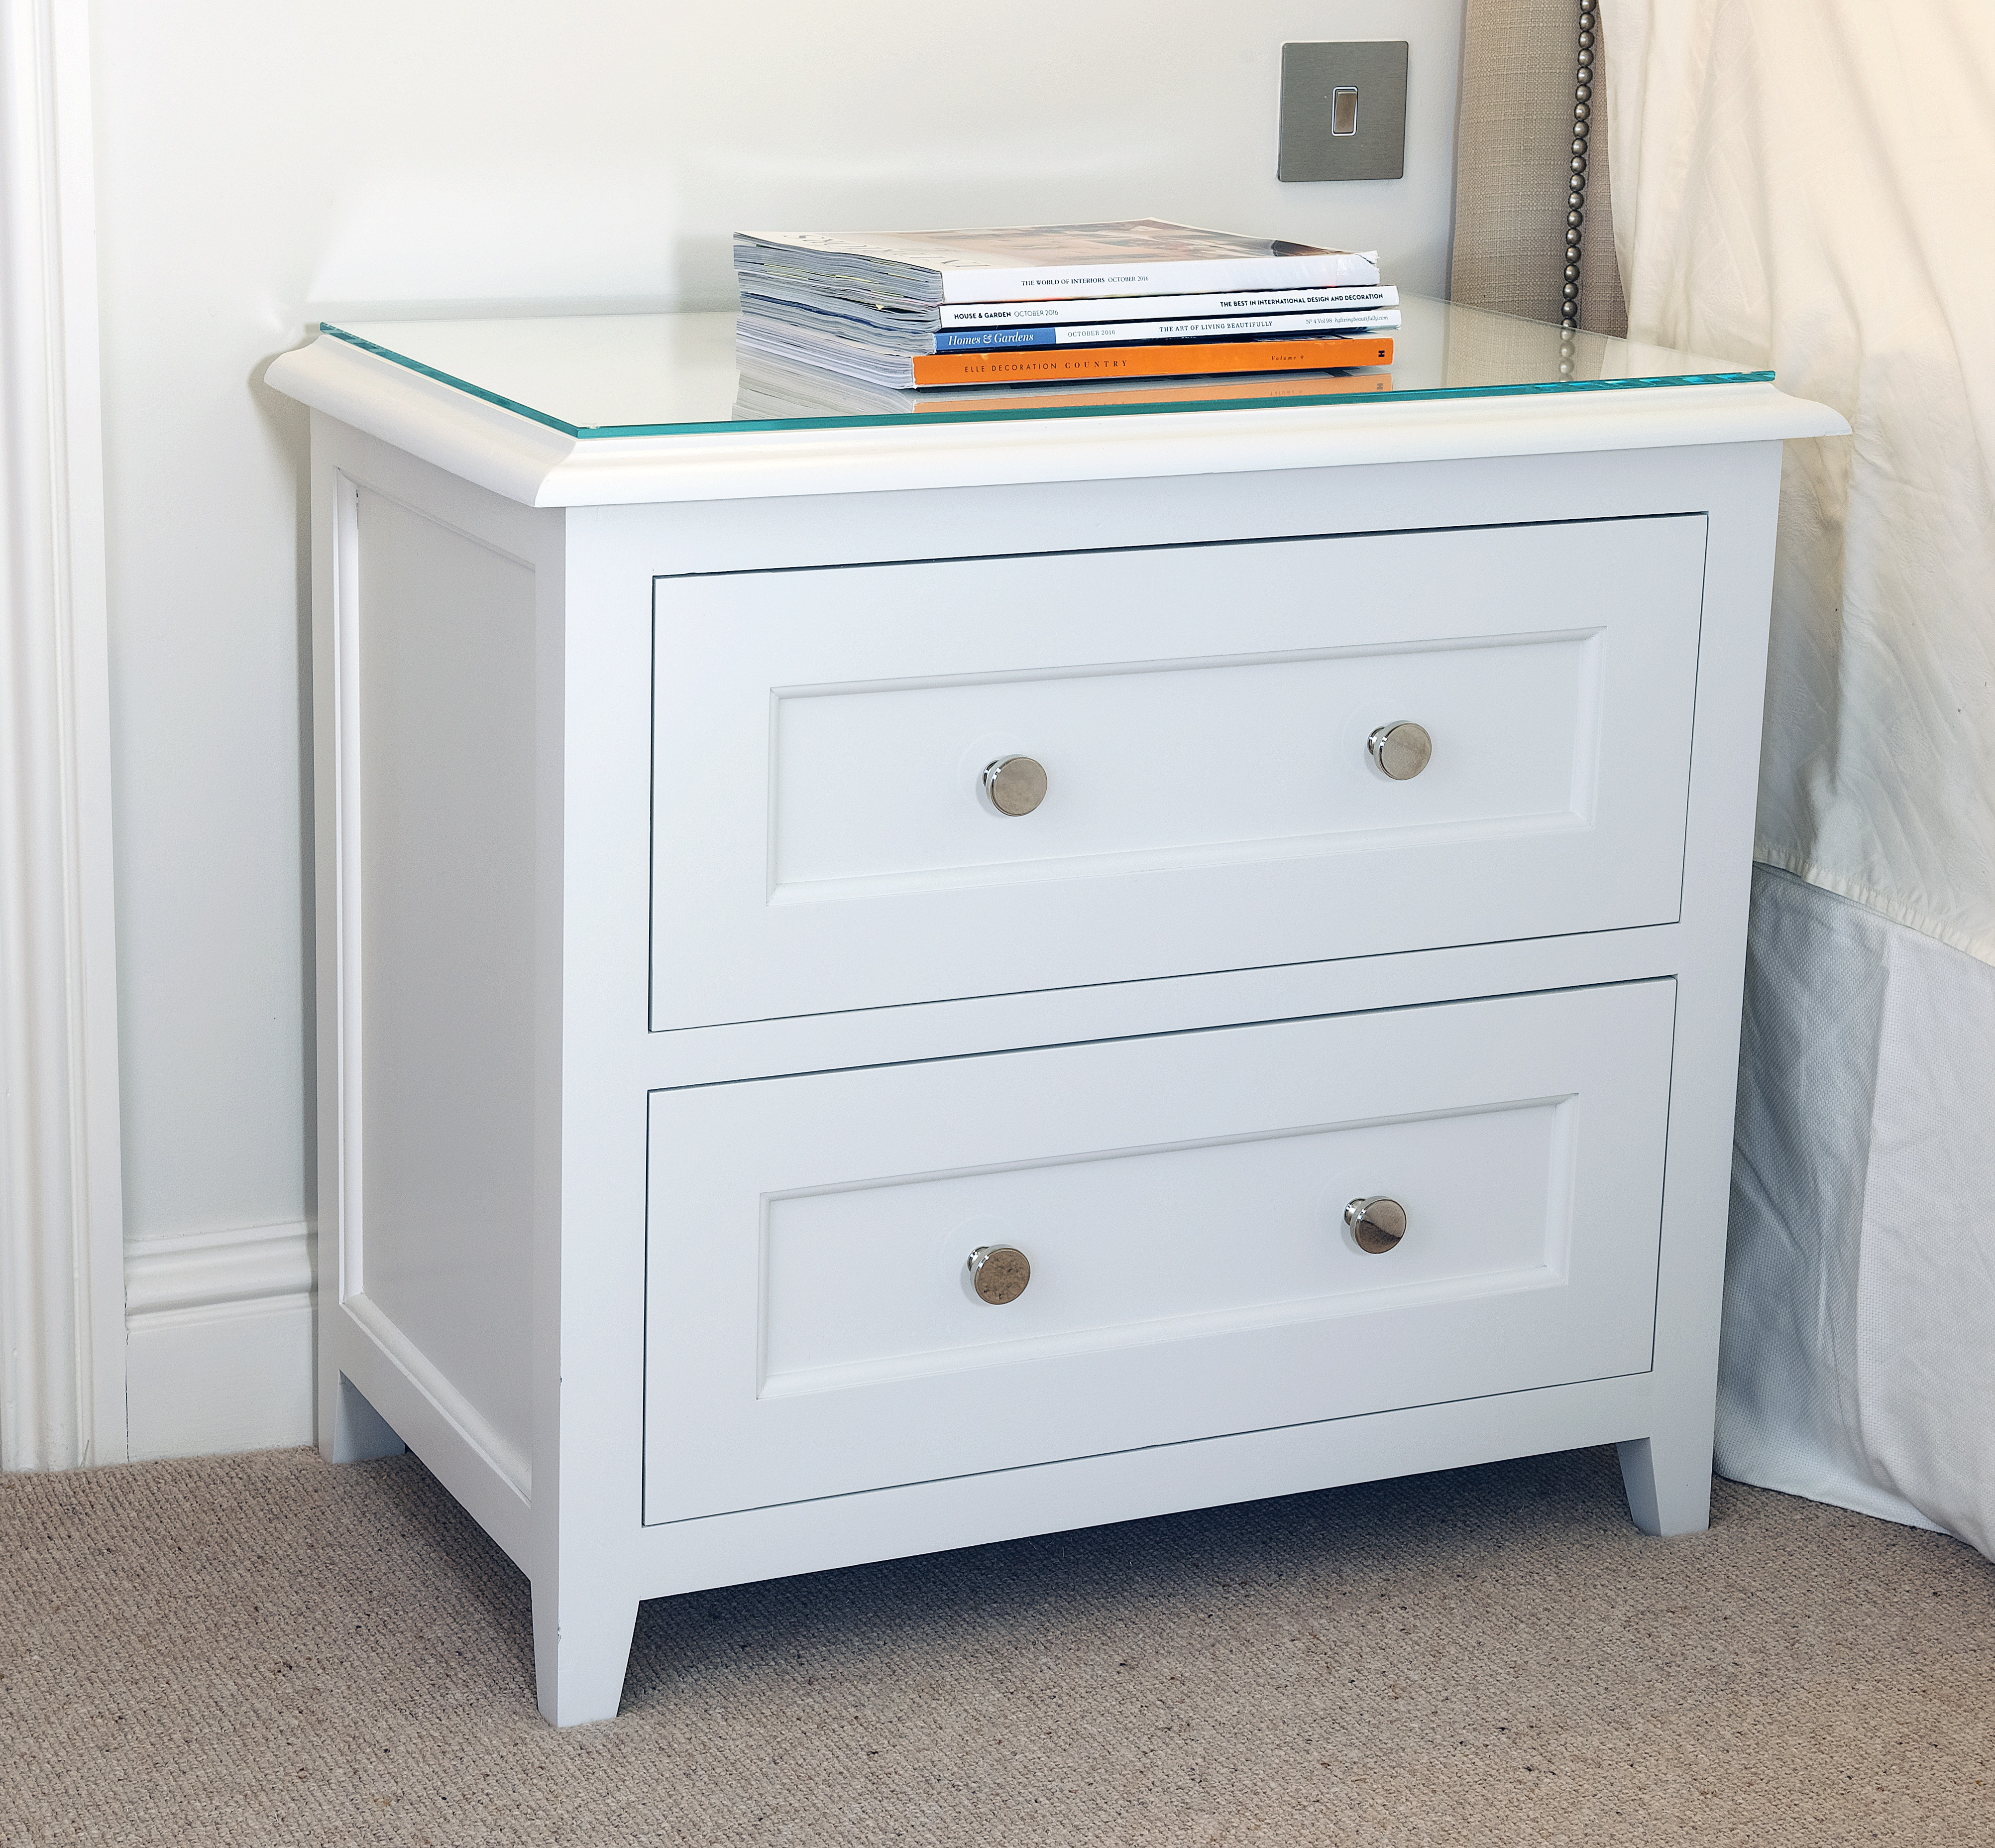 Bespoke shaker style bedside table with two drawers painted in Zoffany Quarter Paris Grey with polished chrome handles.